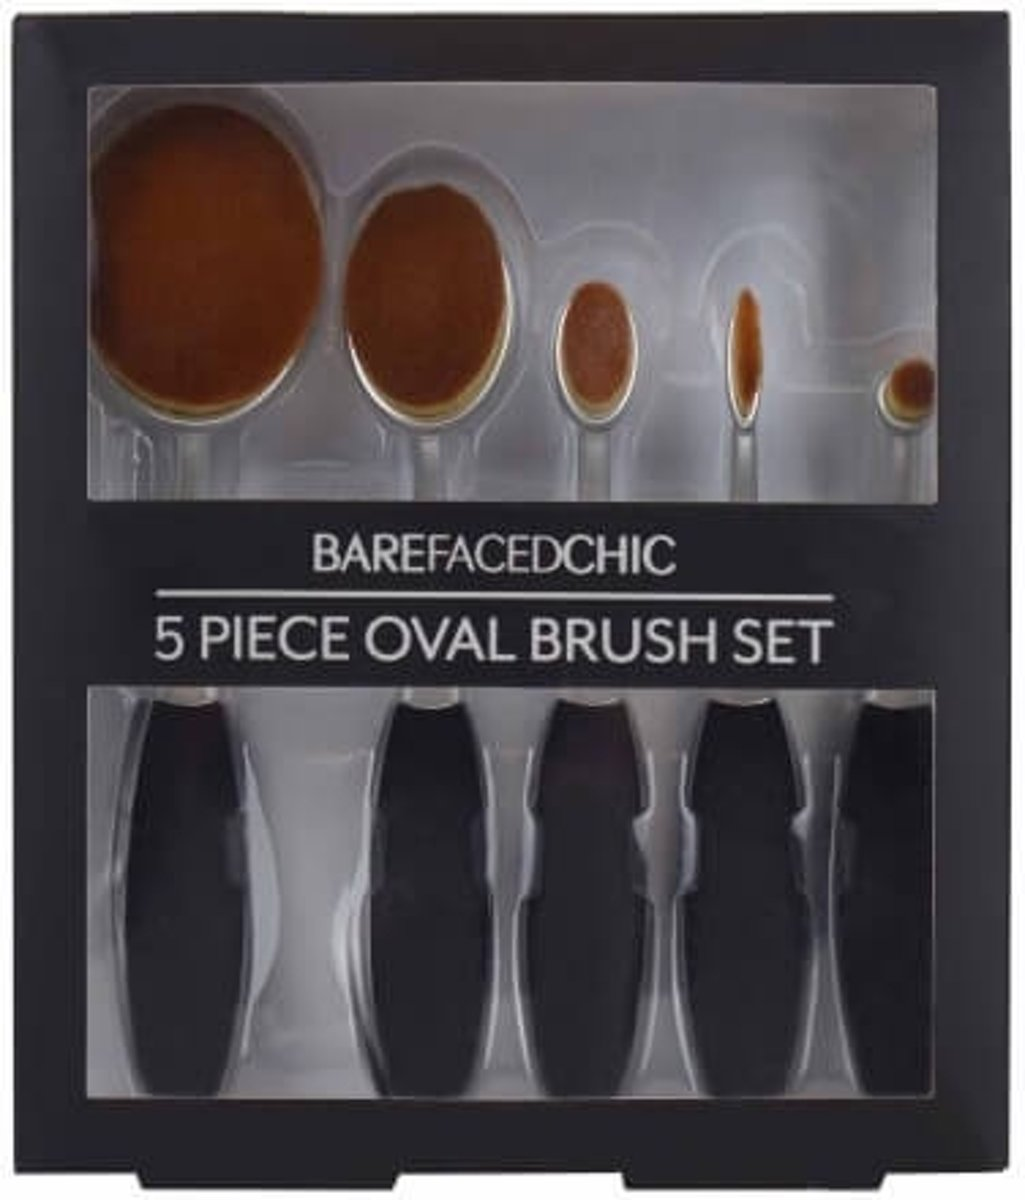 BareFacedChic 5-delige Oval Brush Set